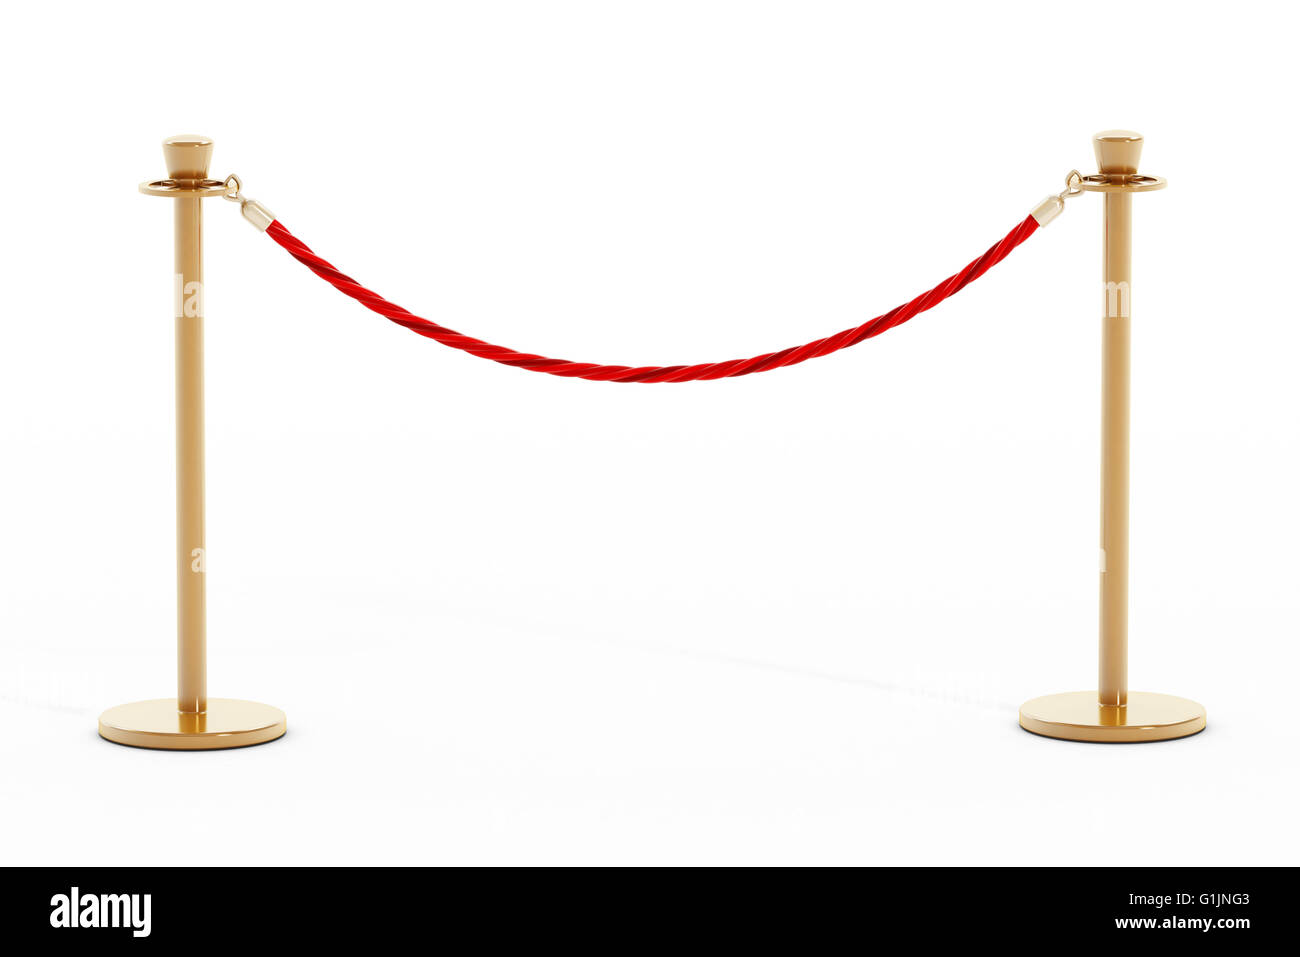 Velvet rope and golden barriers isolated on white background - Stock Image